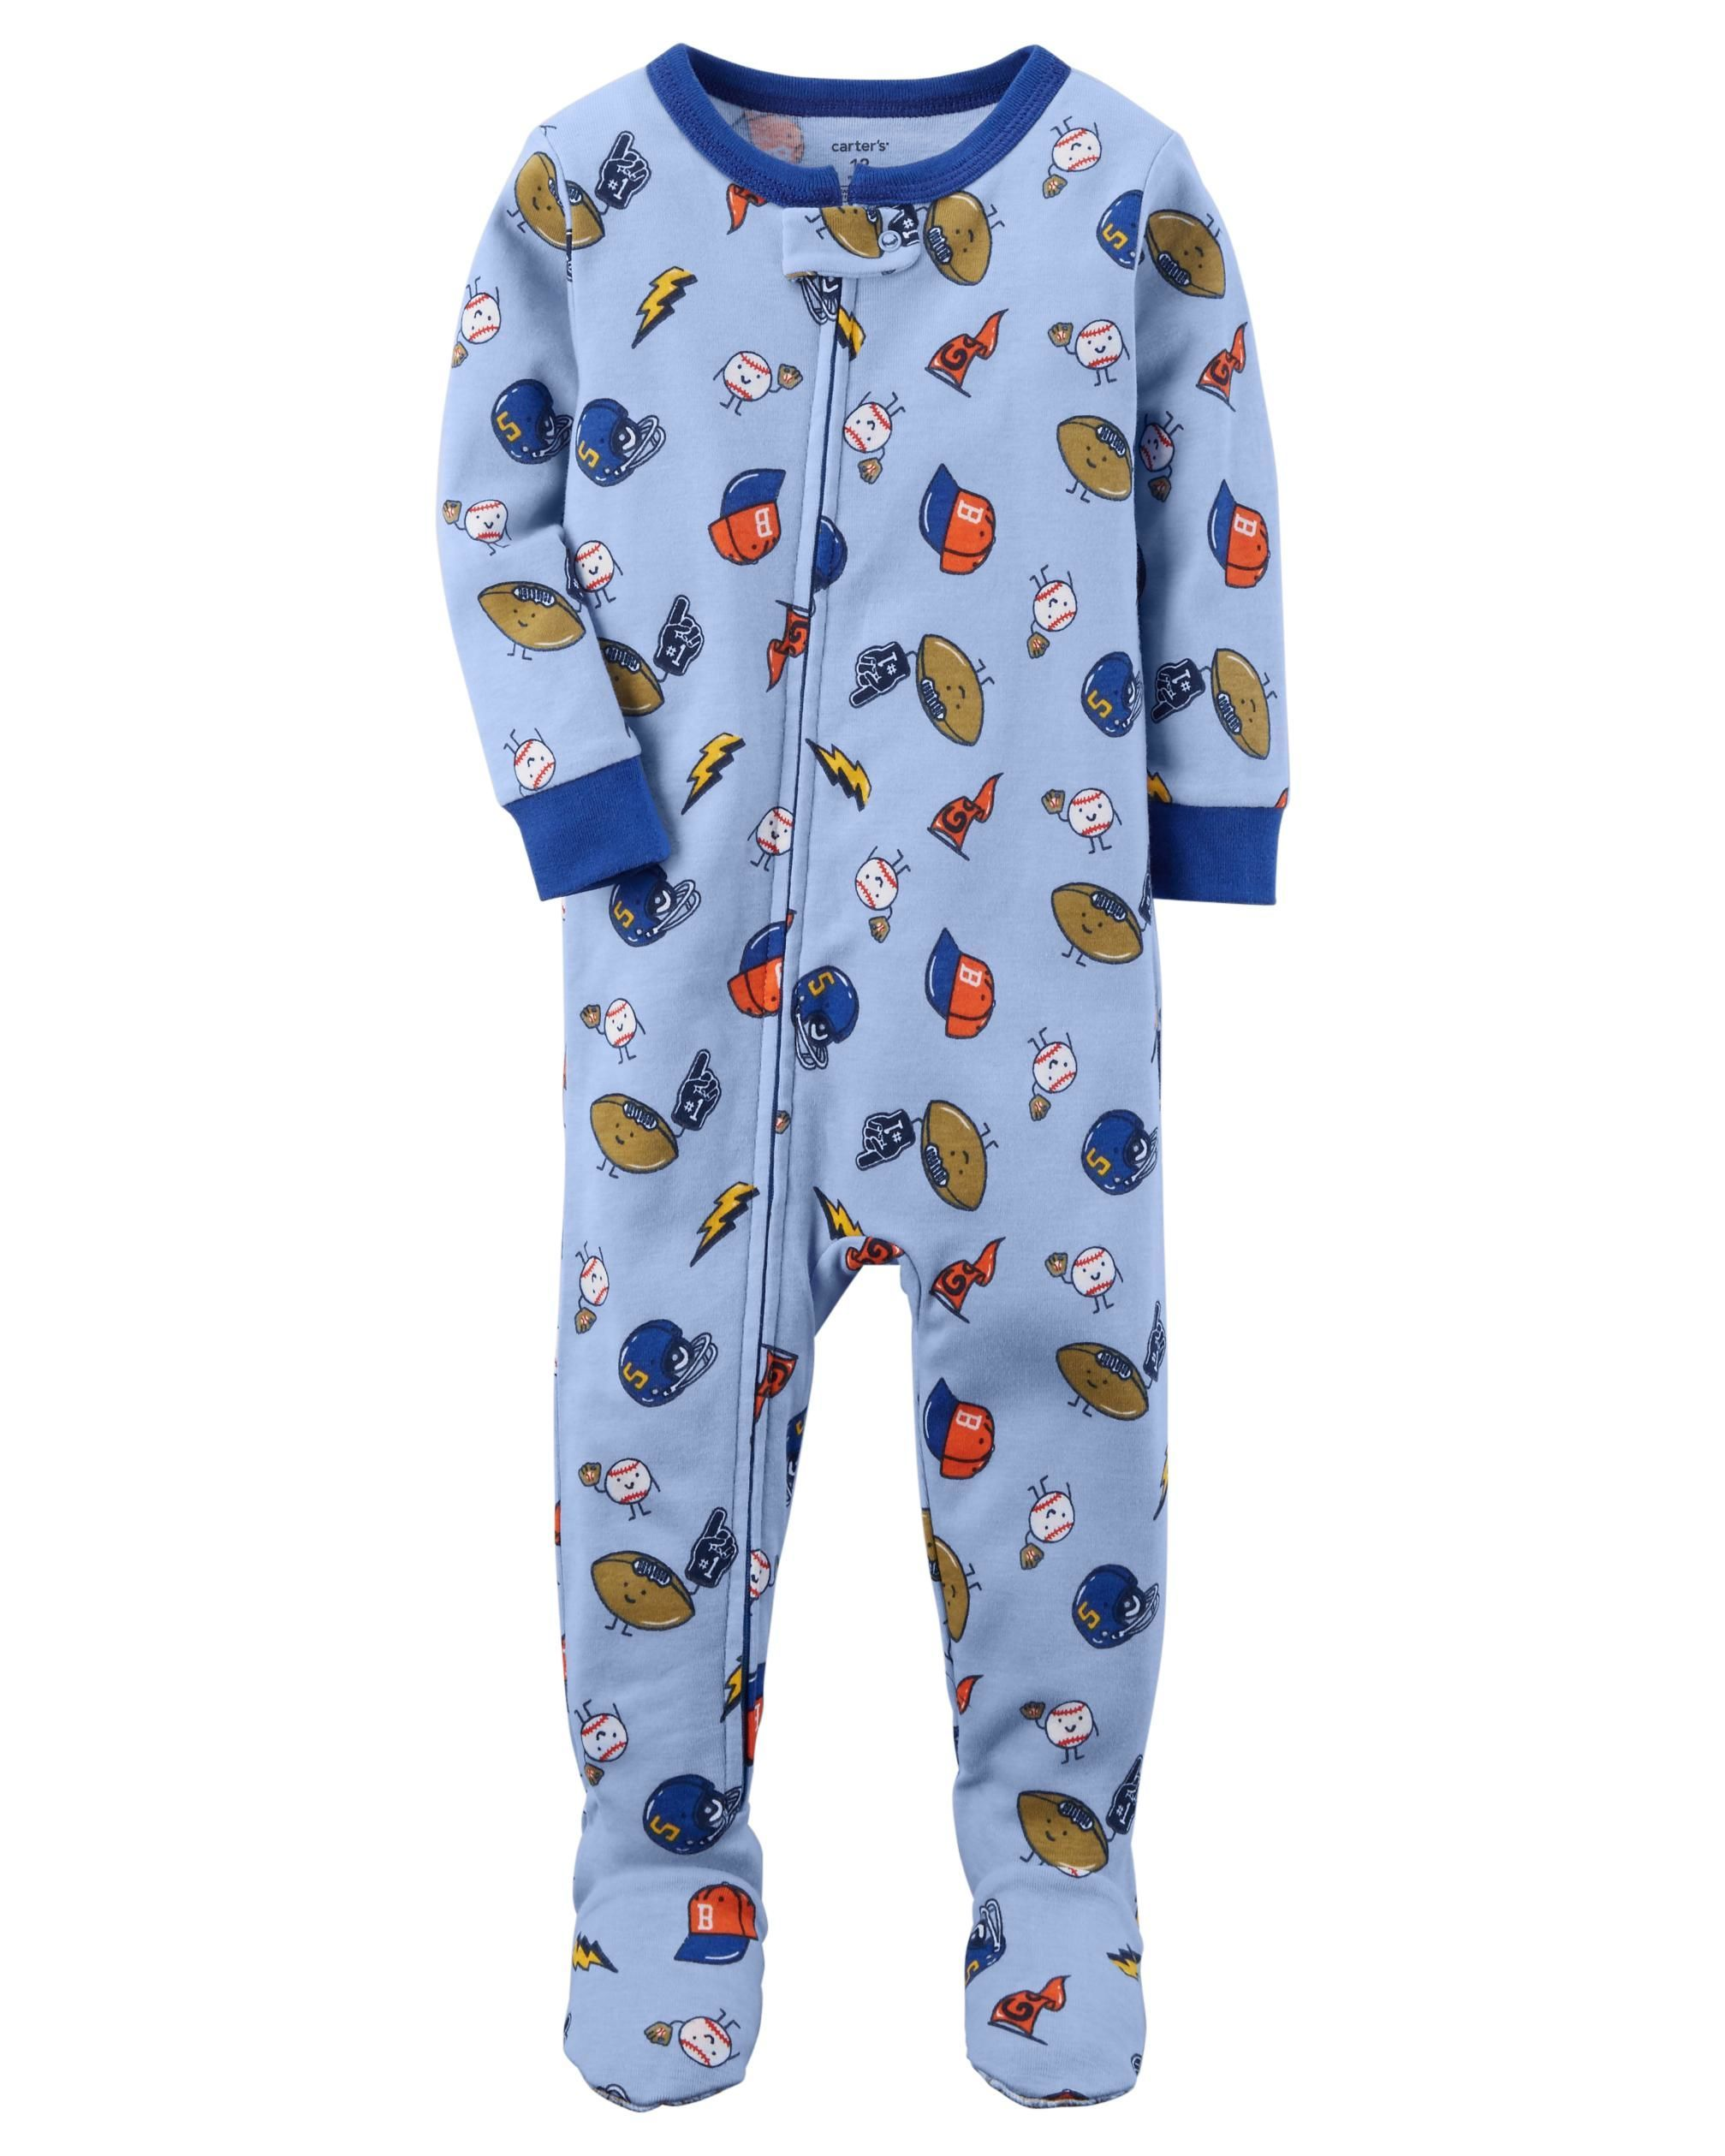 207e08e44 Baby Boy 1-Piece Sports Snug Fit Cotton PJs